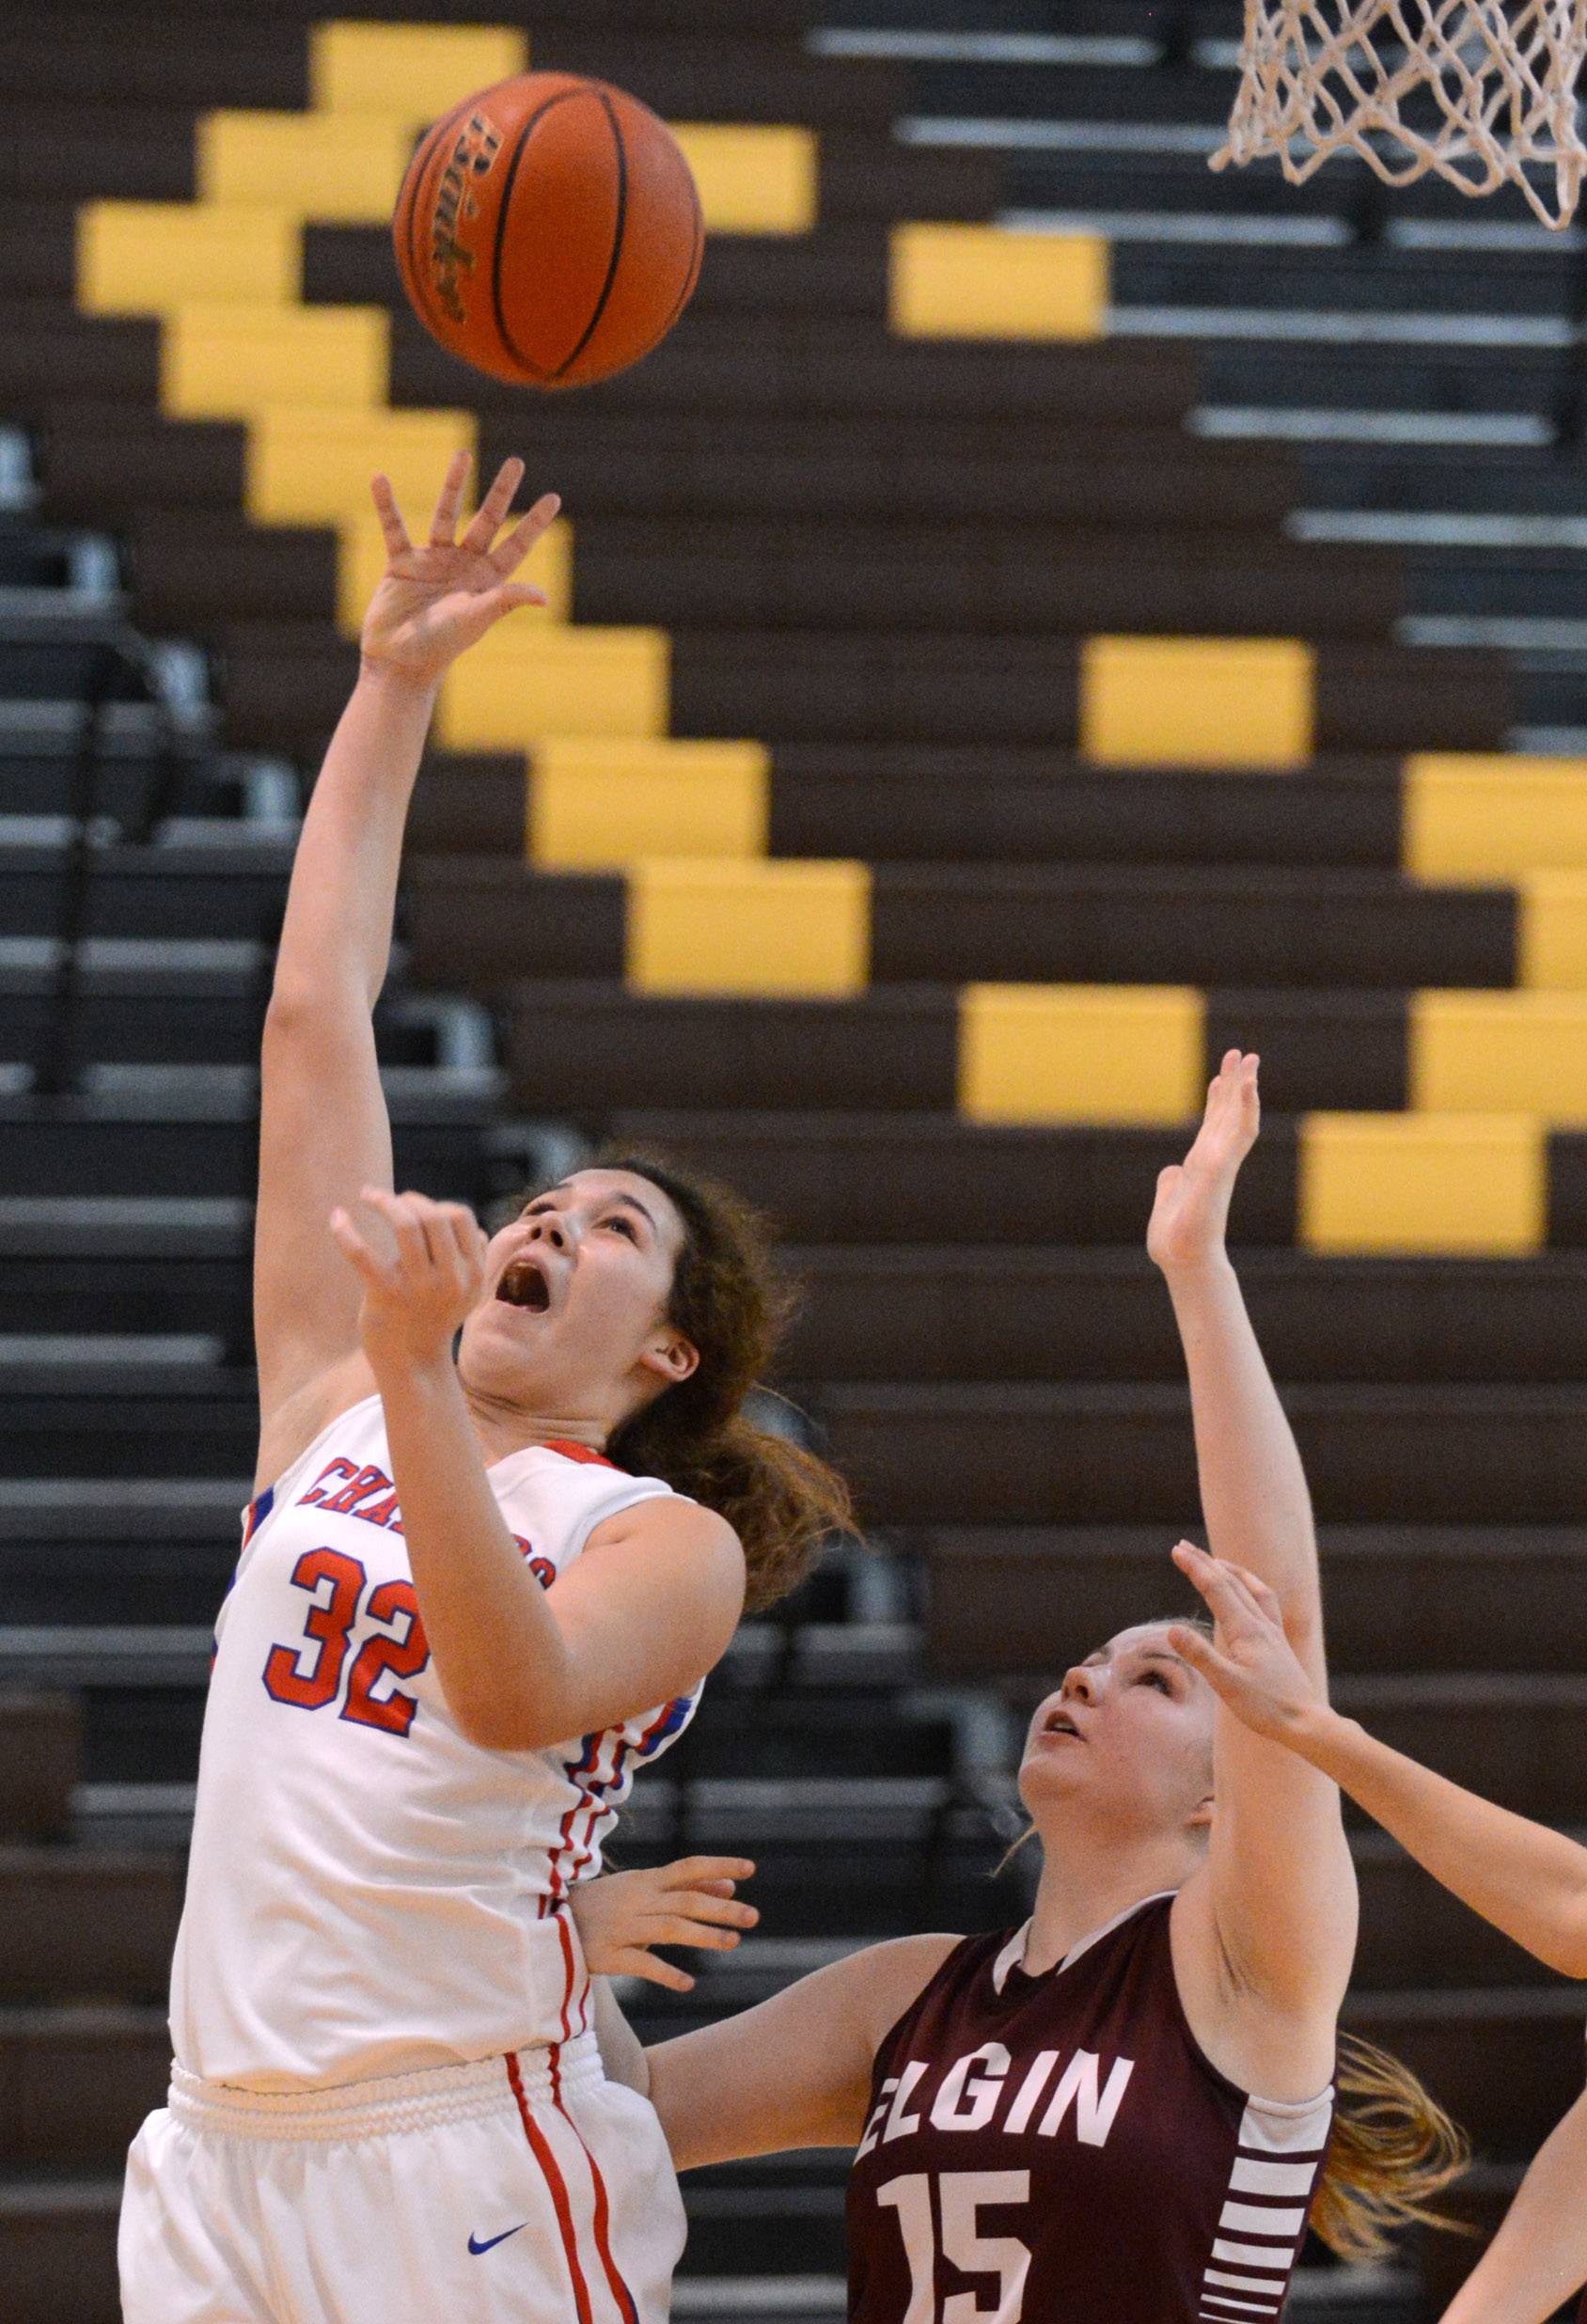 Dundee-Crown's Jesania Laboy (32) shoots and scores against Elgin during Monday's regional action in Algonquin.